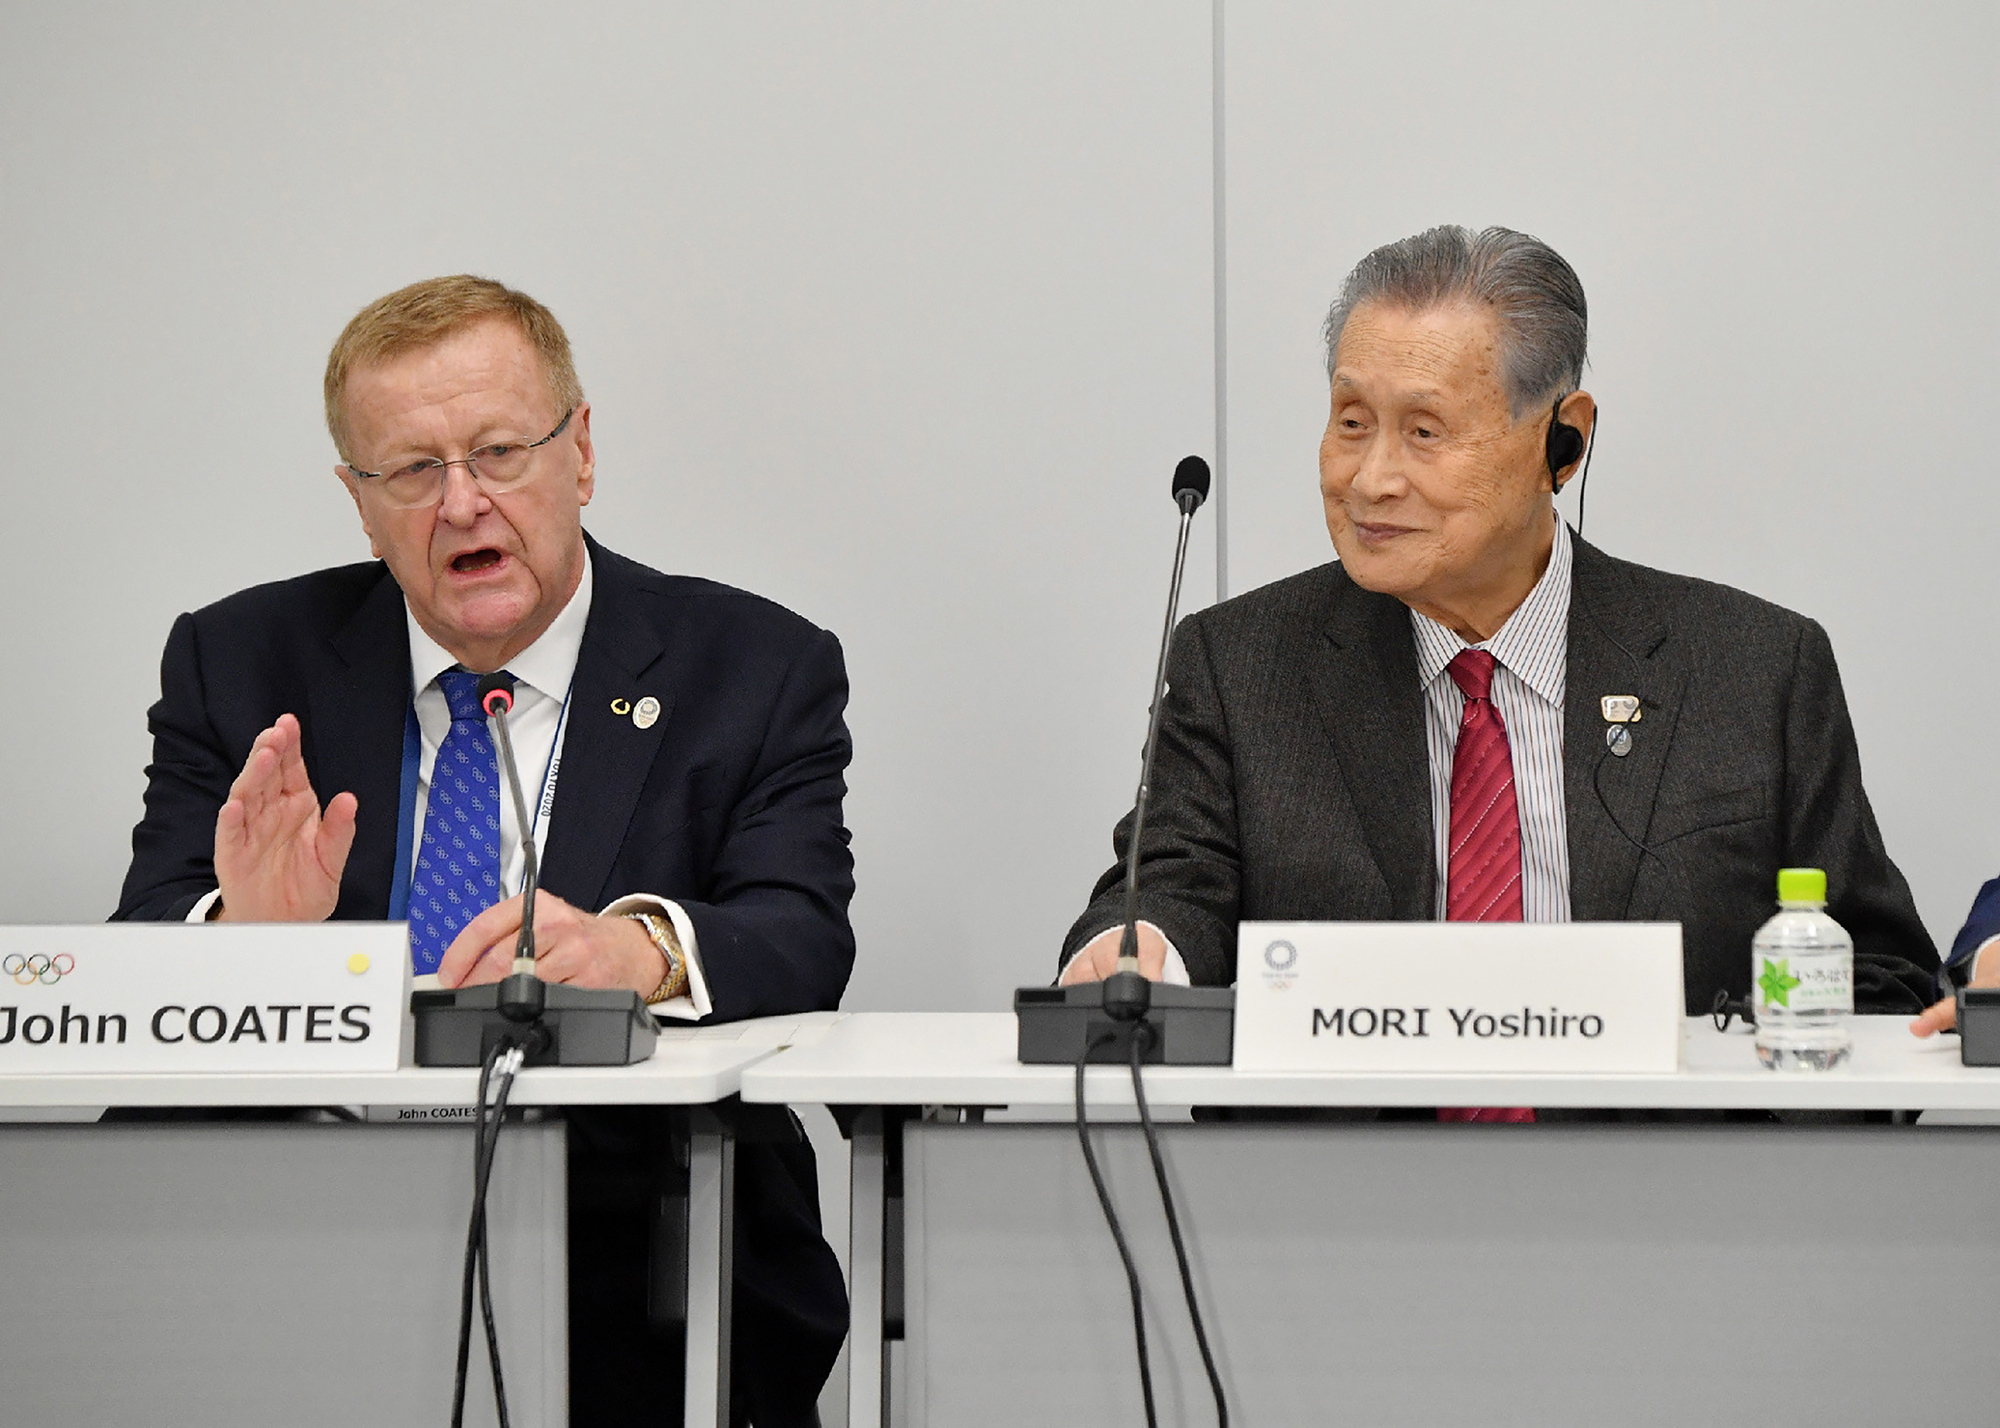 Chairman of the Tokyo 2020 Olympic Games coordination committee John Coates, left, and Tokyo 2020 president Yoshiro Mori attend the International Olympic Committee (IOC) project review meeting in Tokyo on February 13.